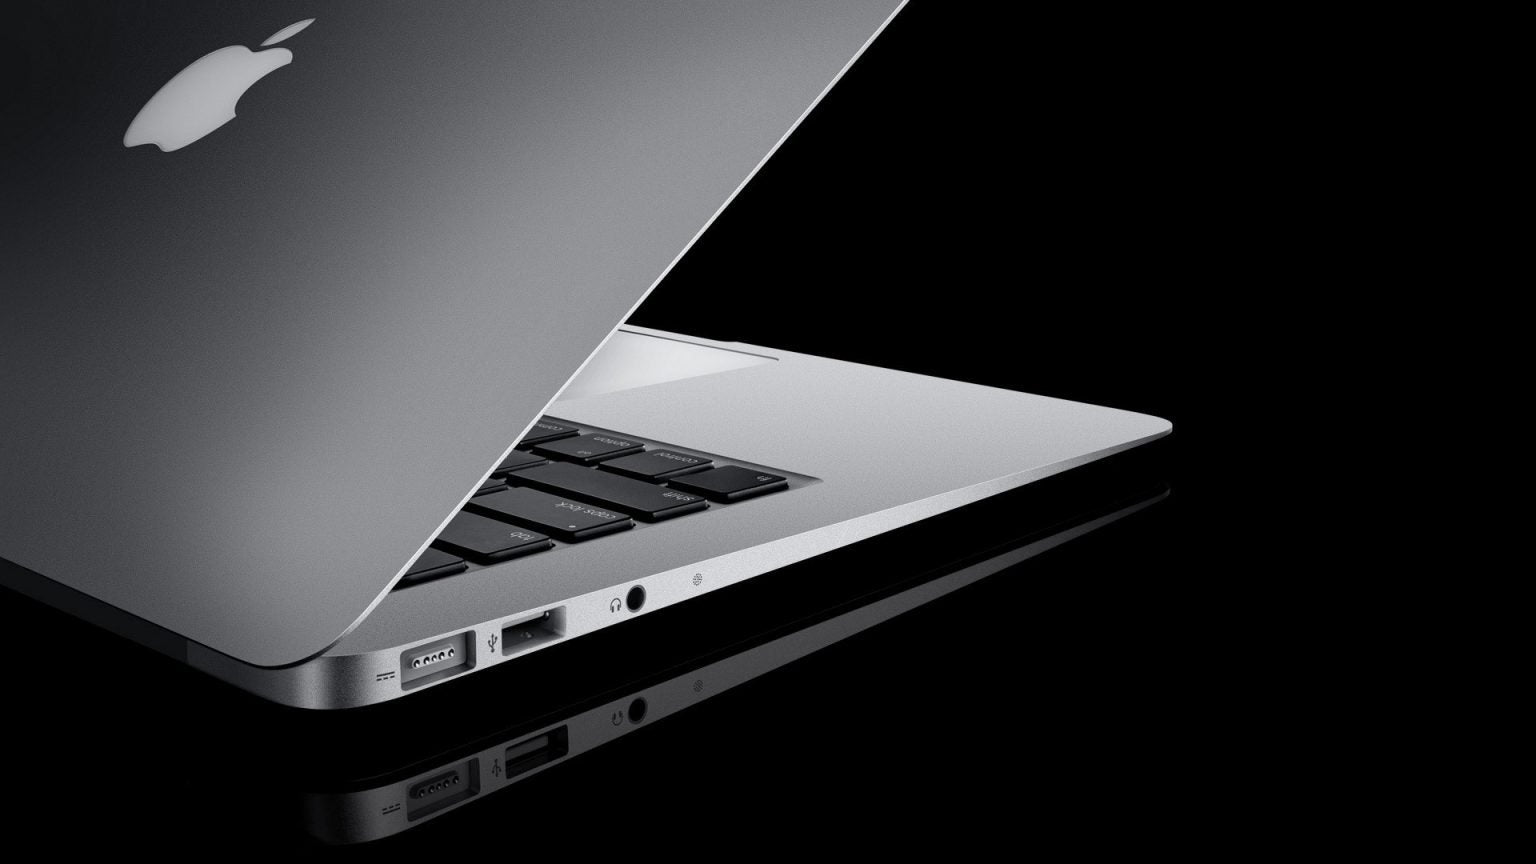 Supply chain revealed that MacBook capacity will increase in the third quarter